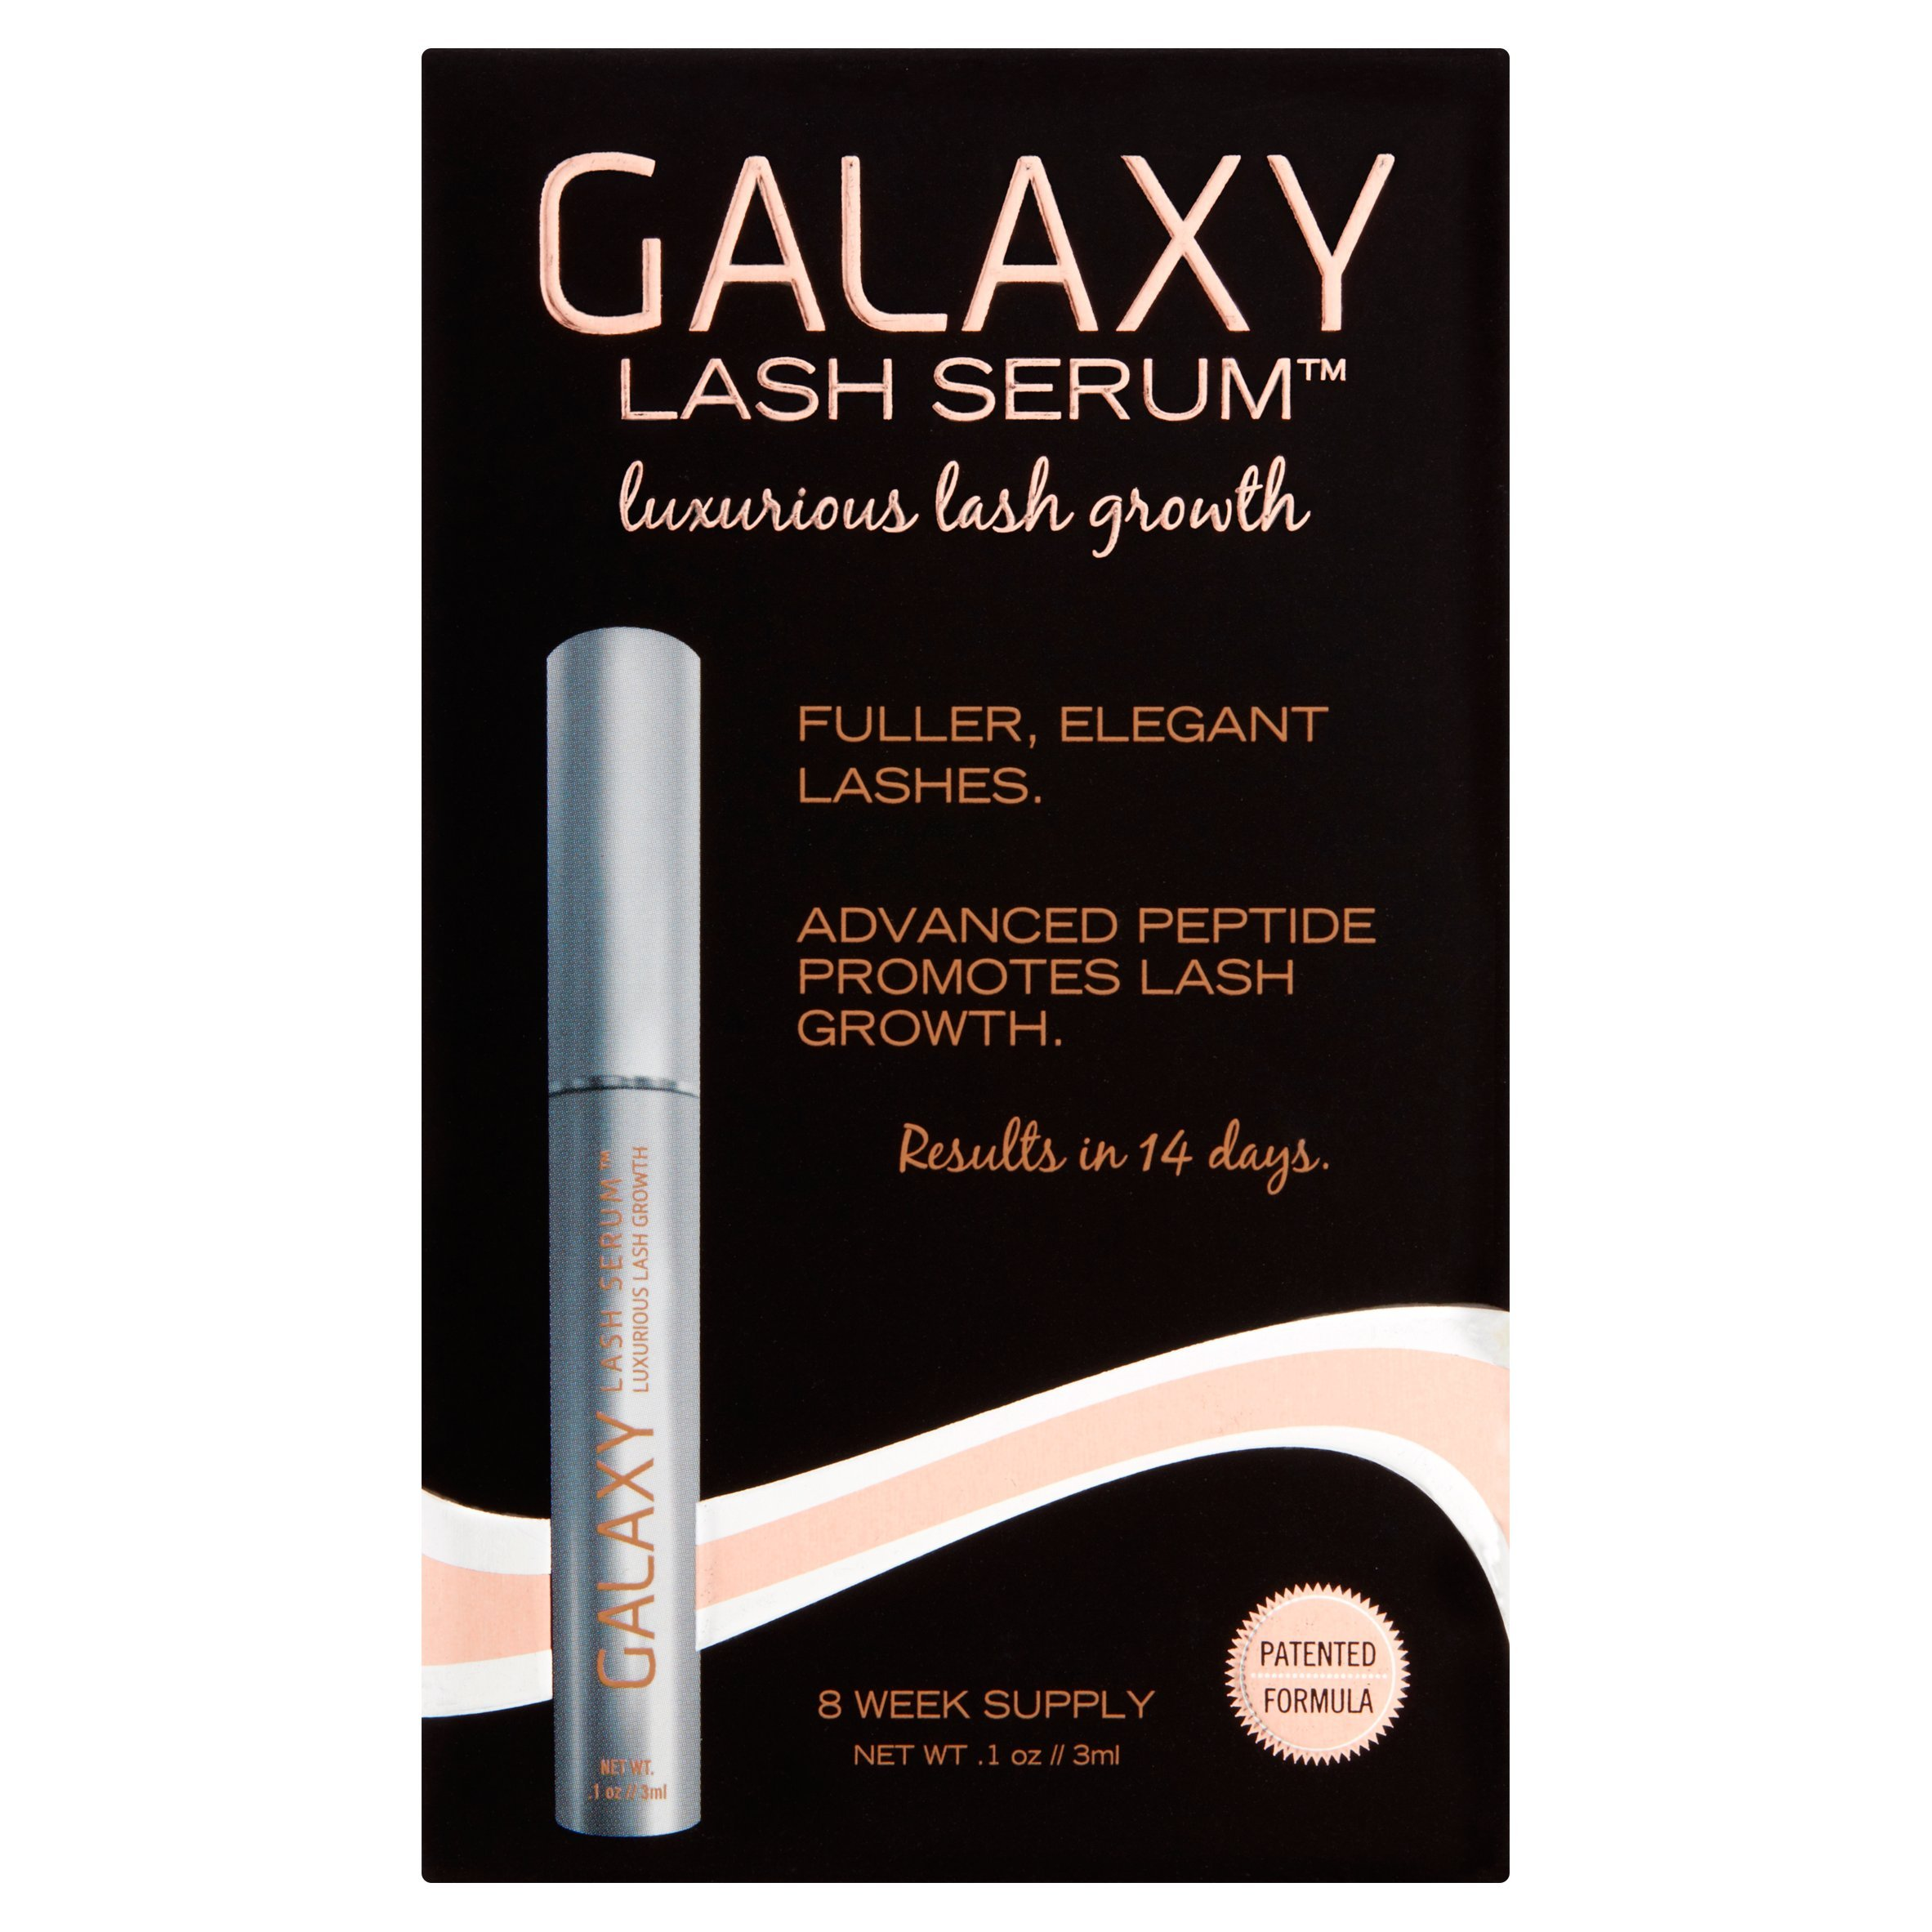 Galaxy Lash Serum - #1 World Renowned Eyelash Growth Product As Used By Industry Professionals with Patented Proprietary Peptide Blend, Luxurious Lashes Without a Prescription, Only Real Product on the Market That Has Been Opthalmoligist Tested and Dermat